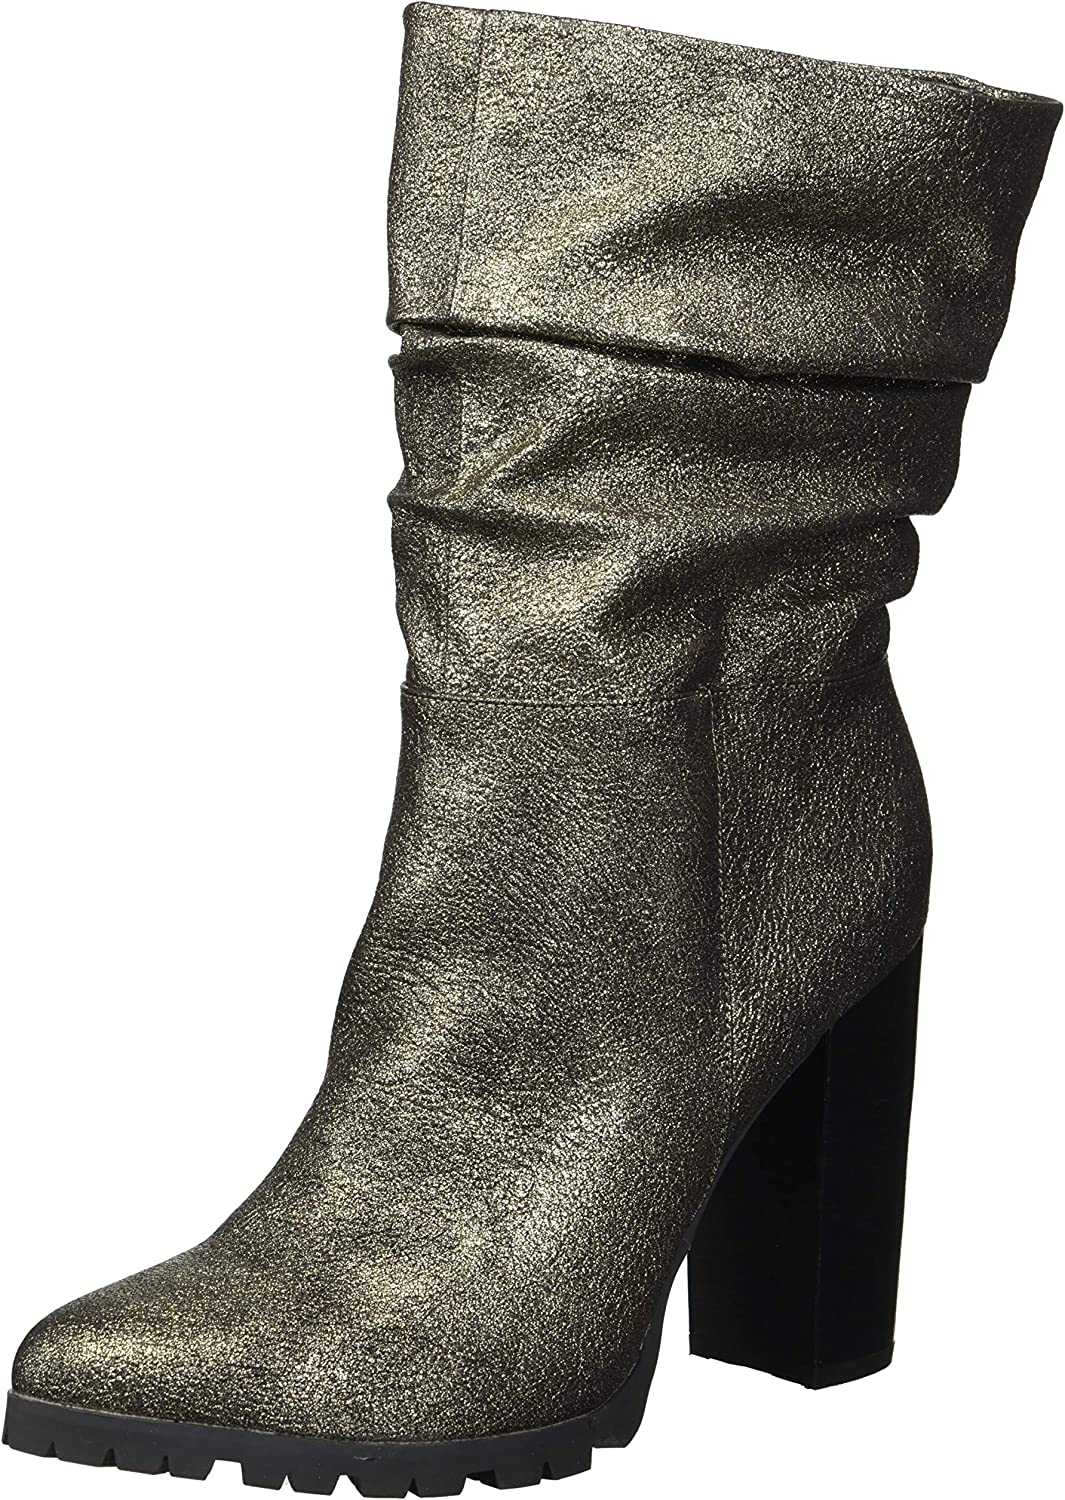 Katy Perry Womens The Oneil Knee High Boot